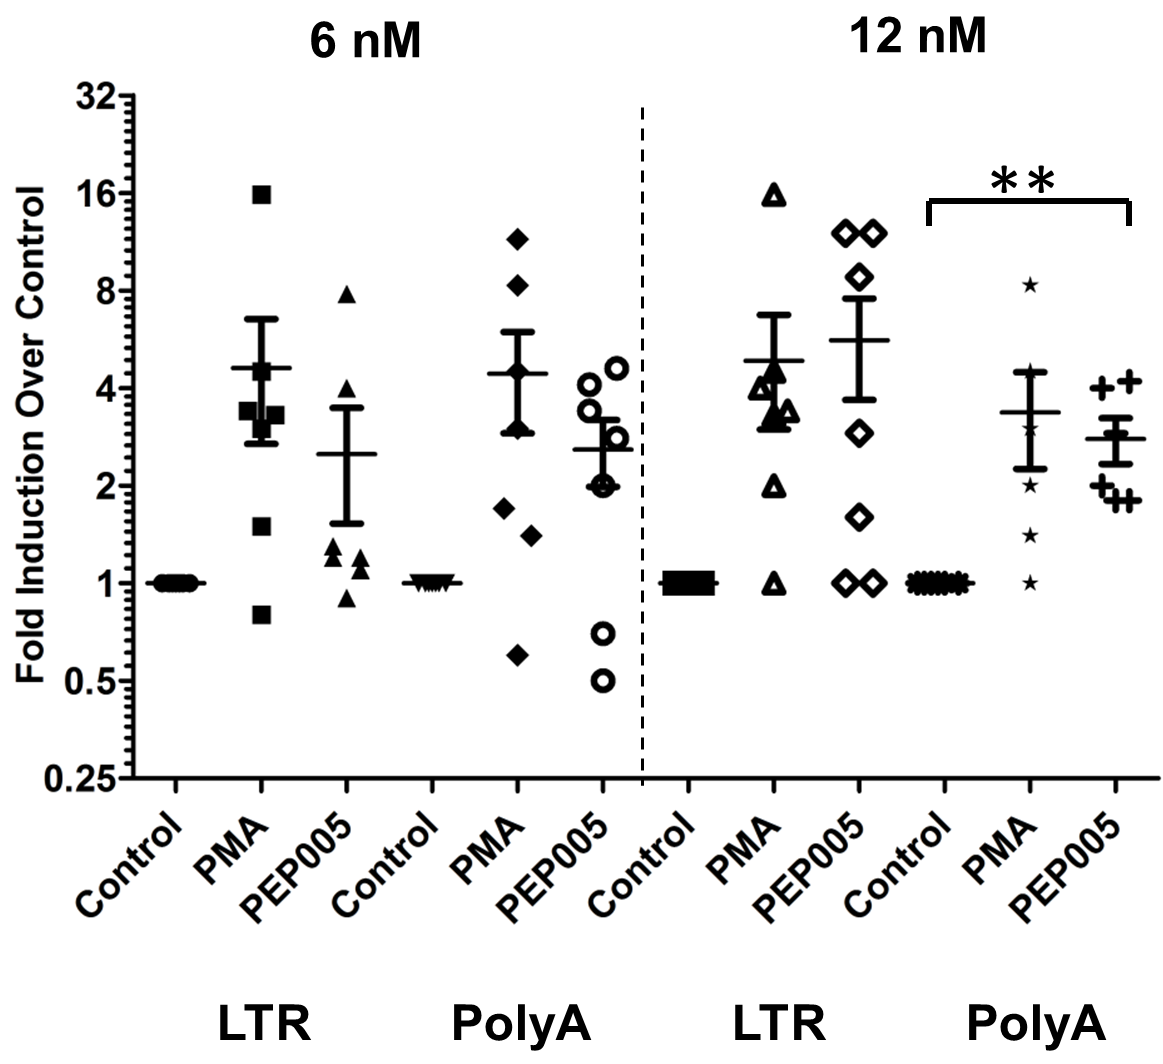 PEP005 induces full-length HIV transcripts in primary CD4+ T cells from HIV infected individuals on suppressive ART.